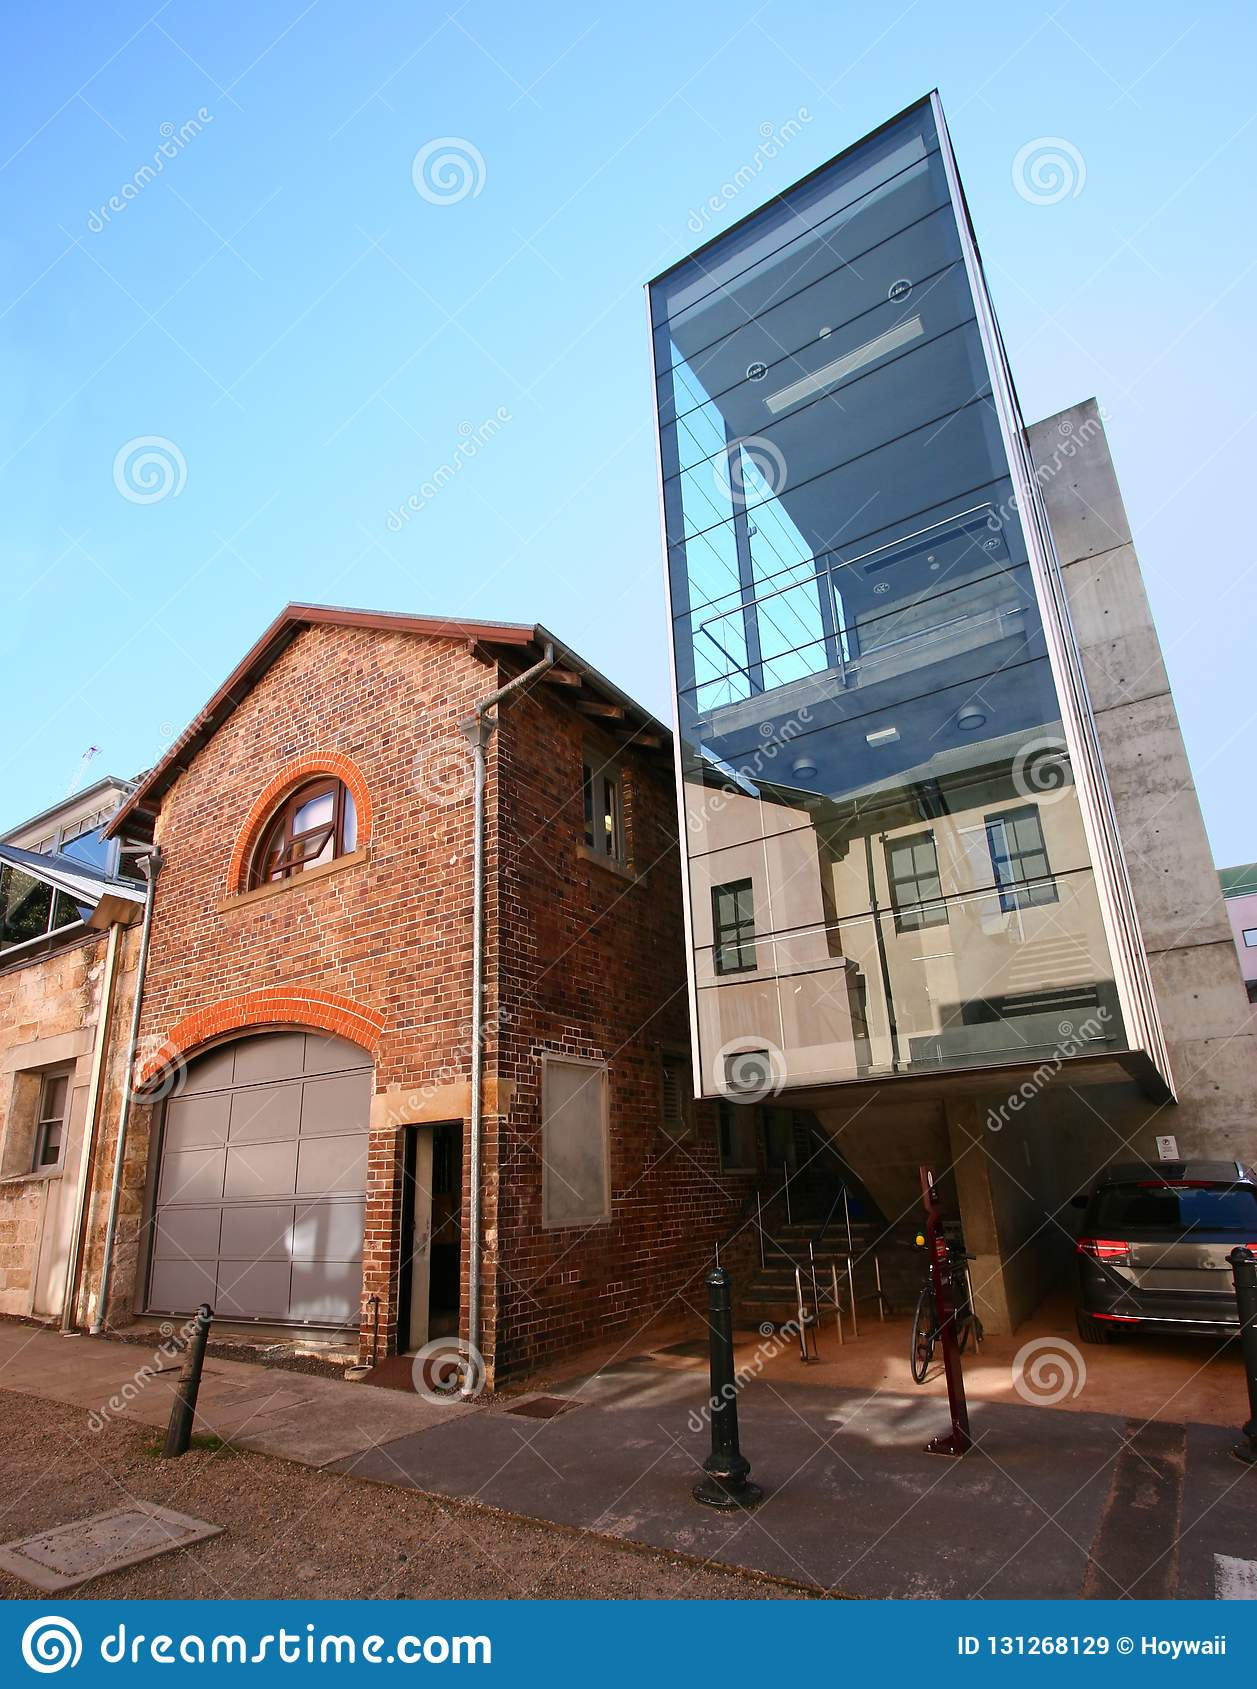 Modern architectural glass stairwell extension added to existing old historic brick building in Sydney Mint in urban downtown CBD